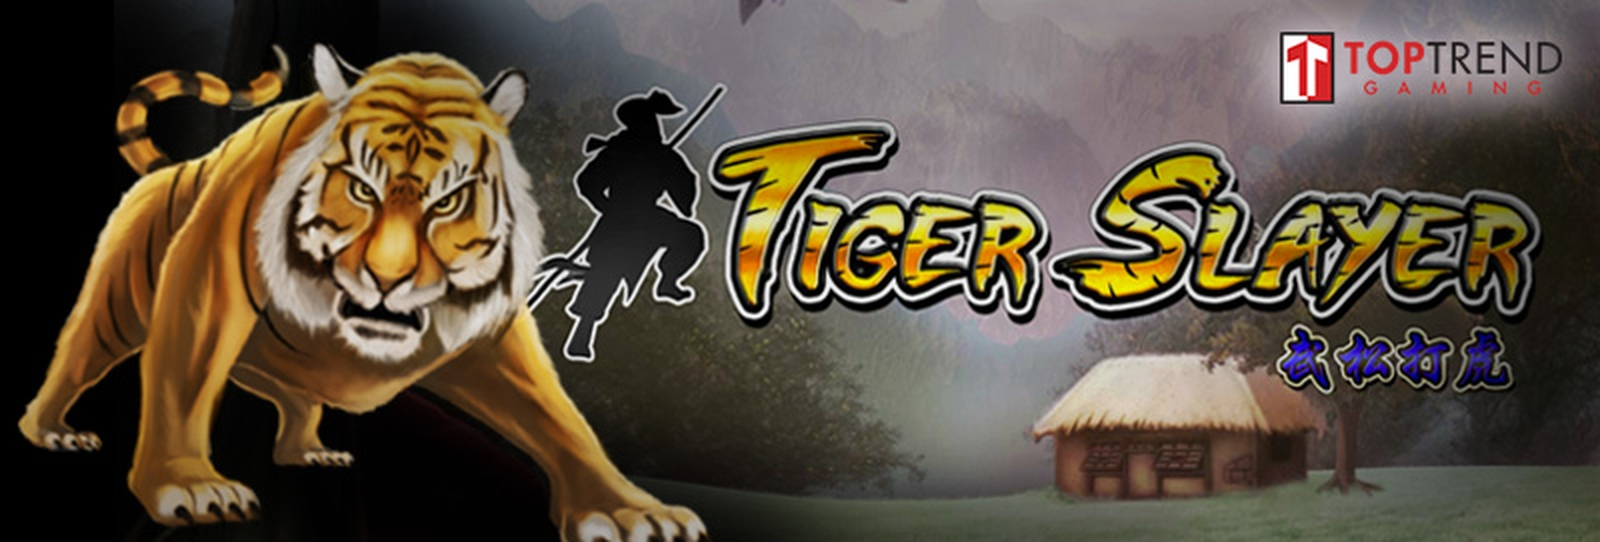 The Tiger Slayer Online Slot Demo Game by Top Trend Gaming